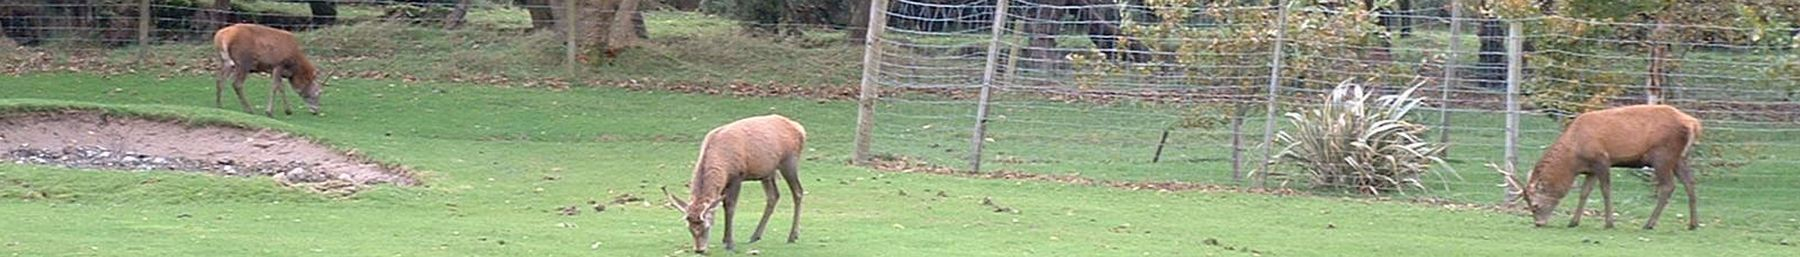 Isle of Arran banner Deer at Lochranza.JPG